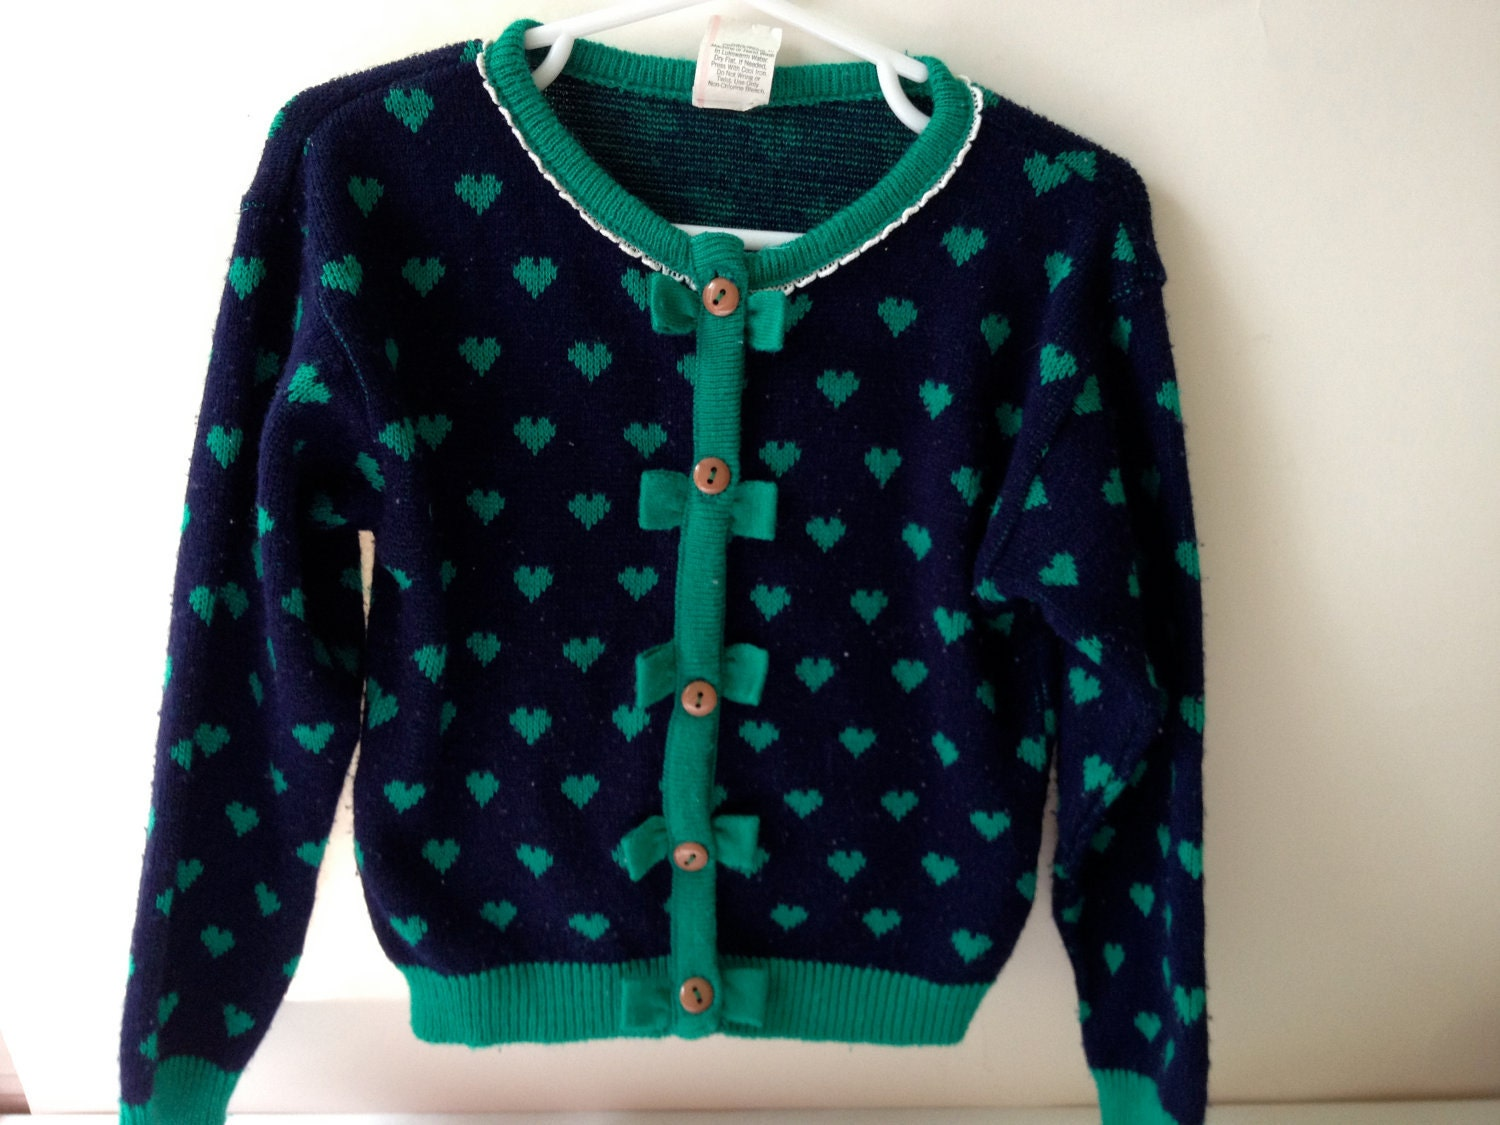 SALE - Vintage Navy Blue/Green Hearts & Bows Cardigan - 4T